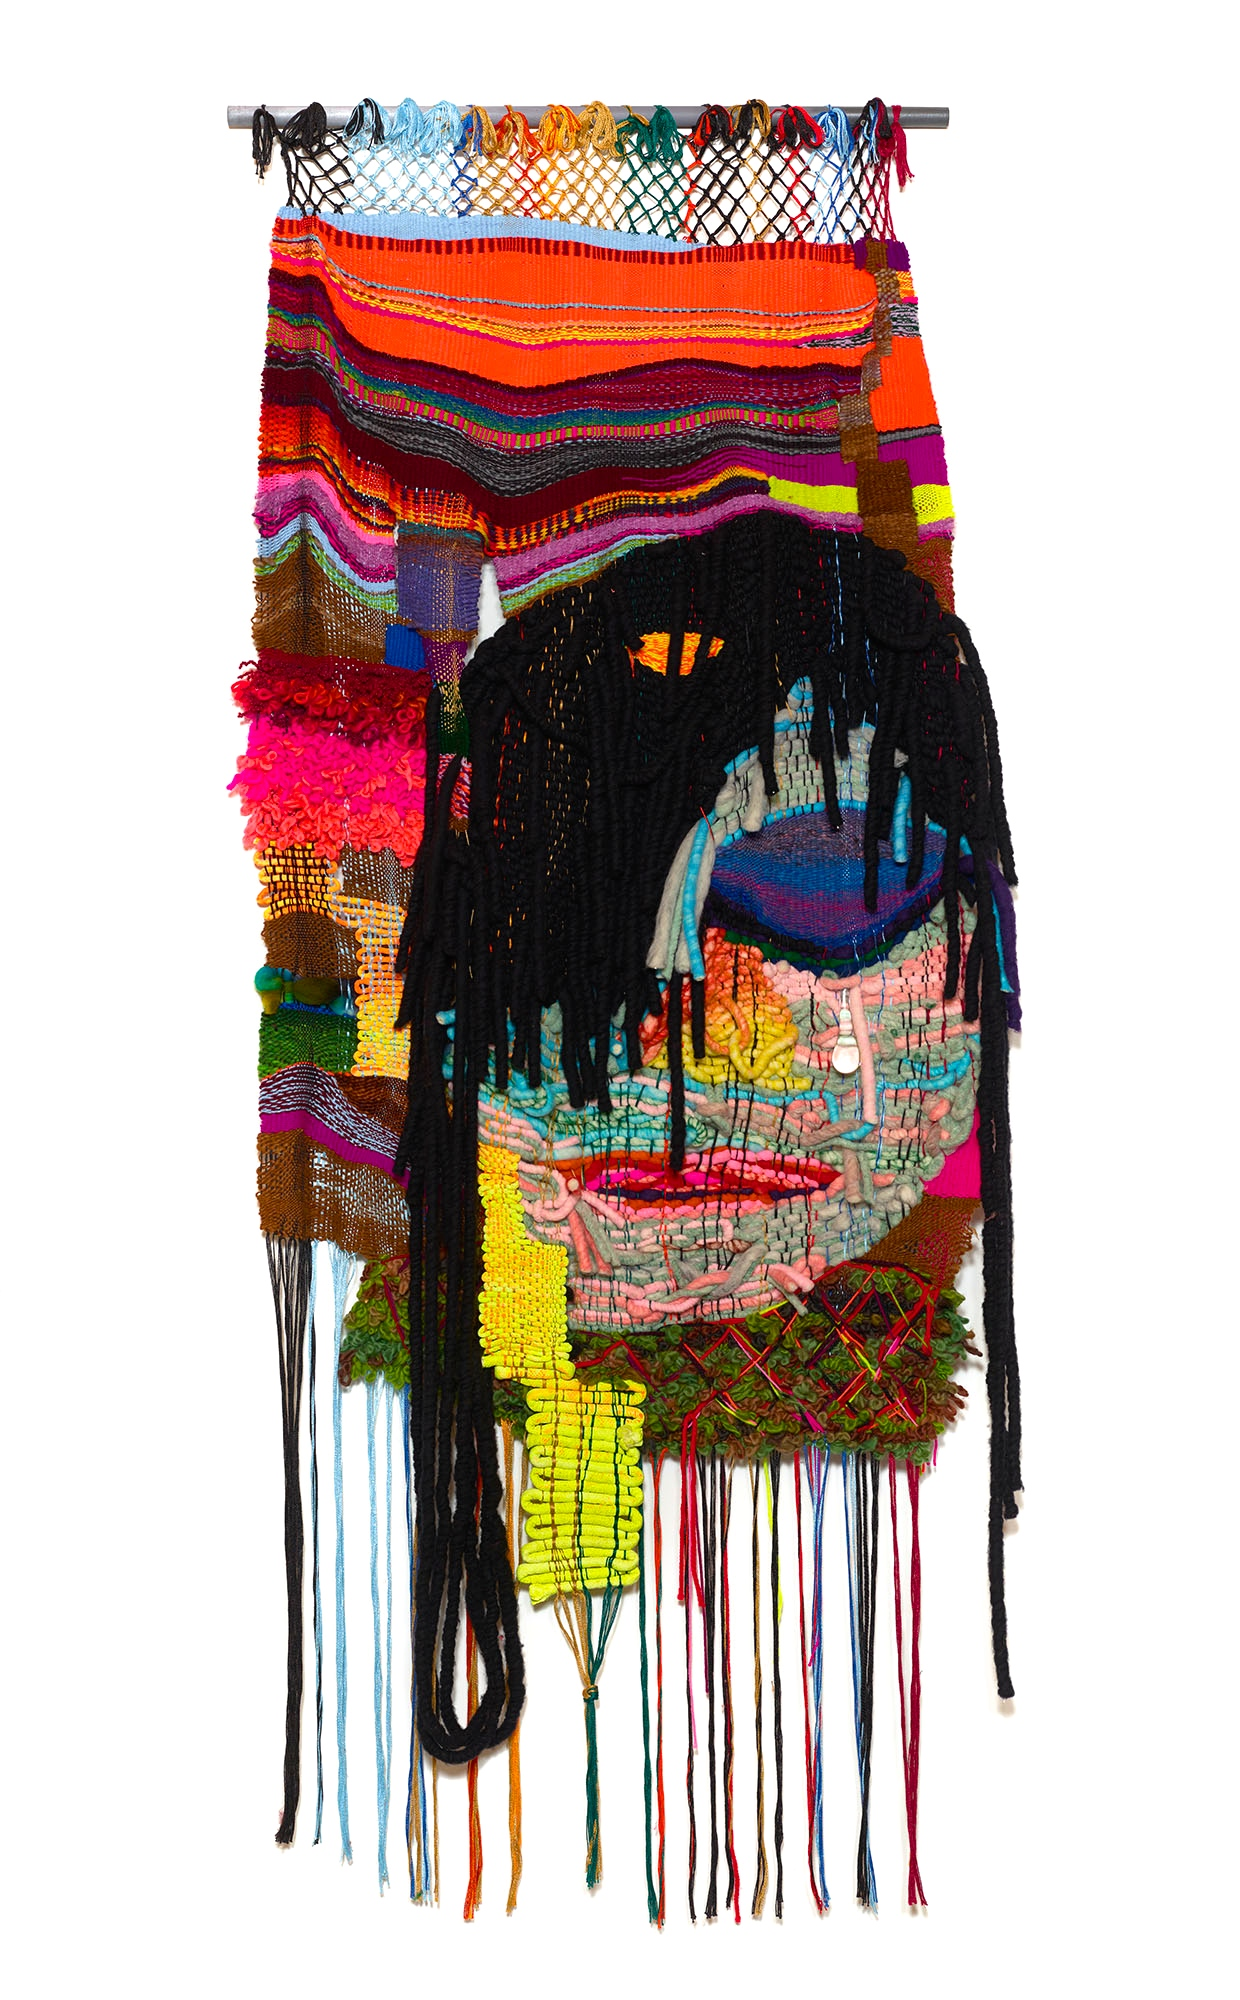 Hard & Weird & Sad, 2016, 90 x 37 in, acrylic and wool fibers, blown glass tear